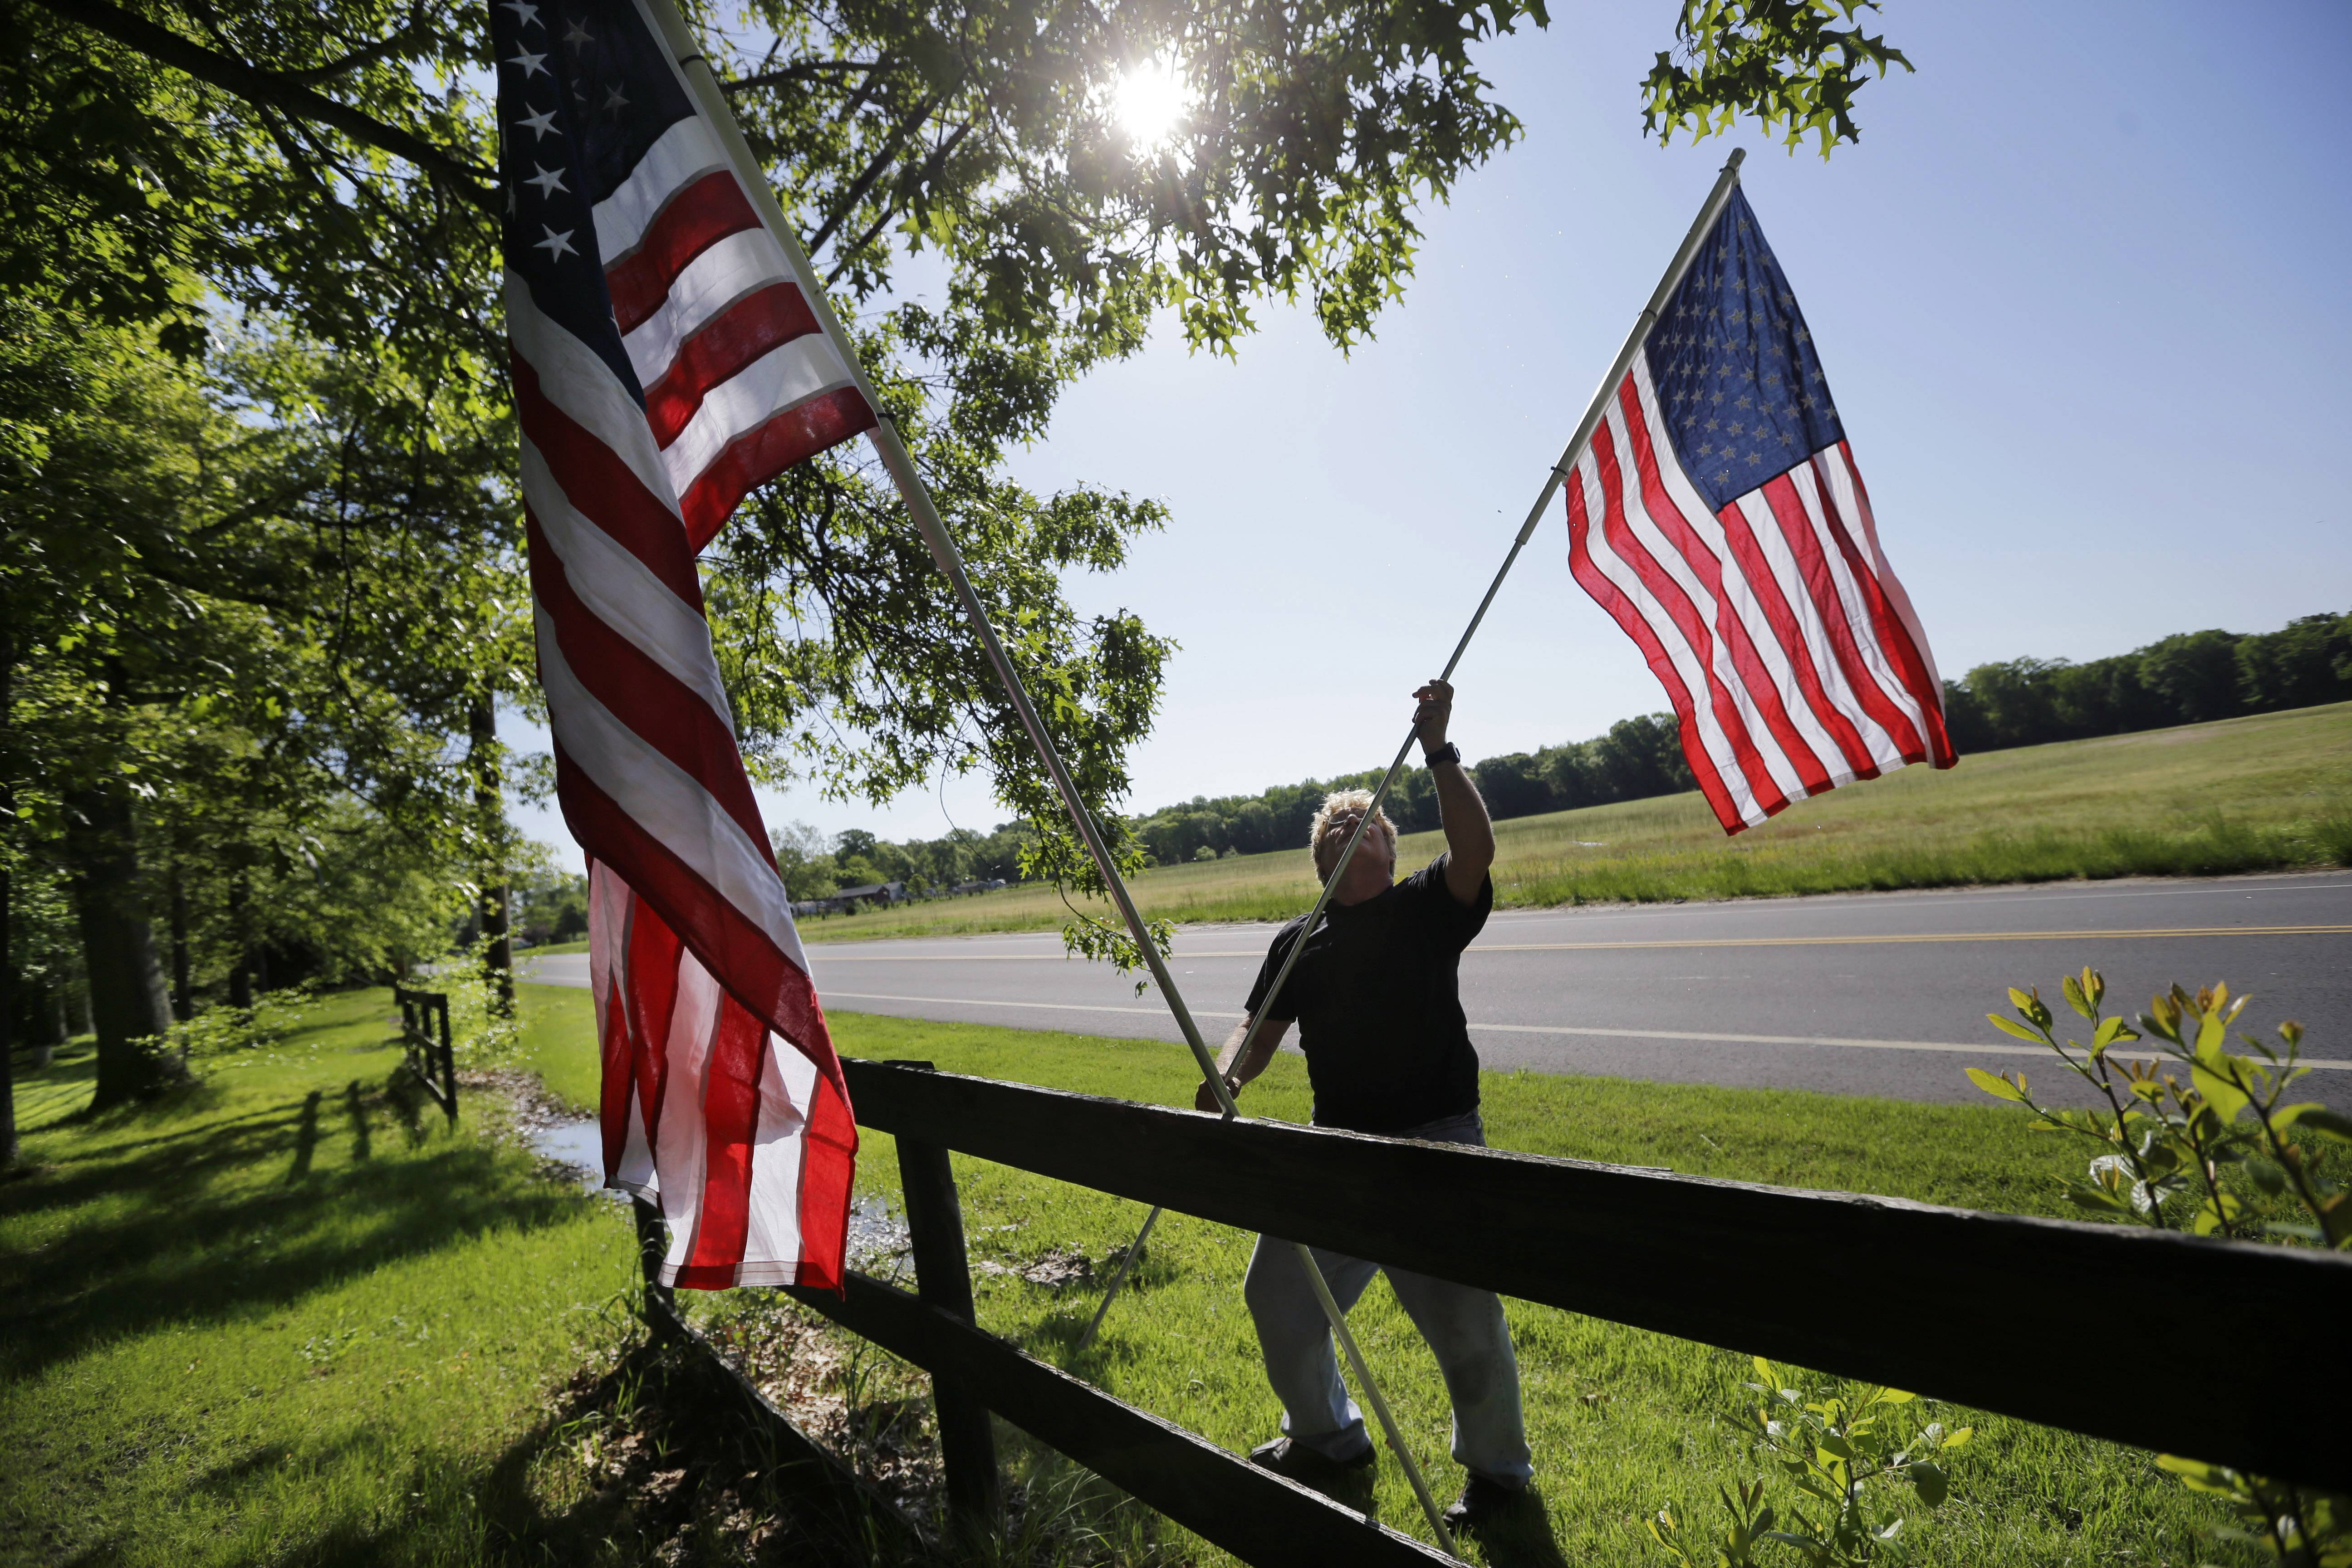 Bob Petersen places flags along a fence for the Memorial Day weekend, at his home in the Cream Ridge section of Upper Freehold, N.J., Sunday, May 25, 2014.